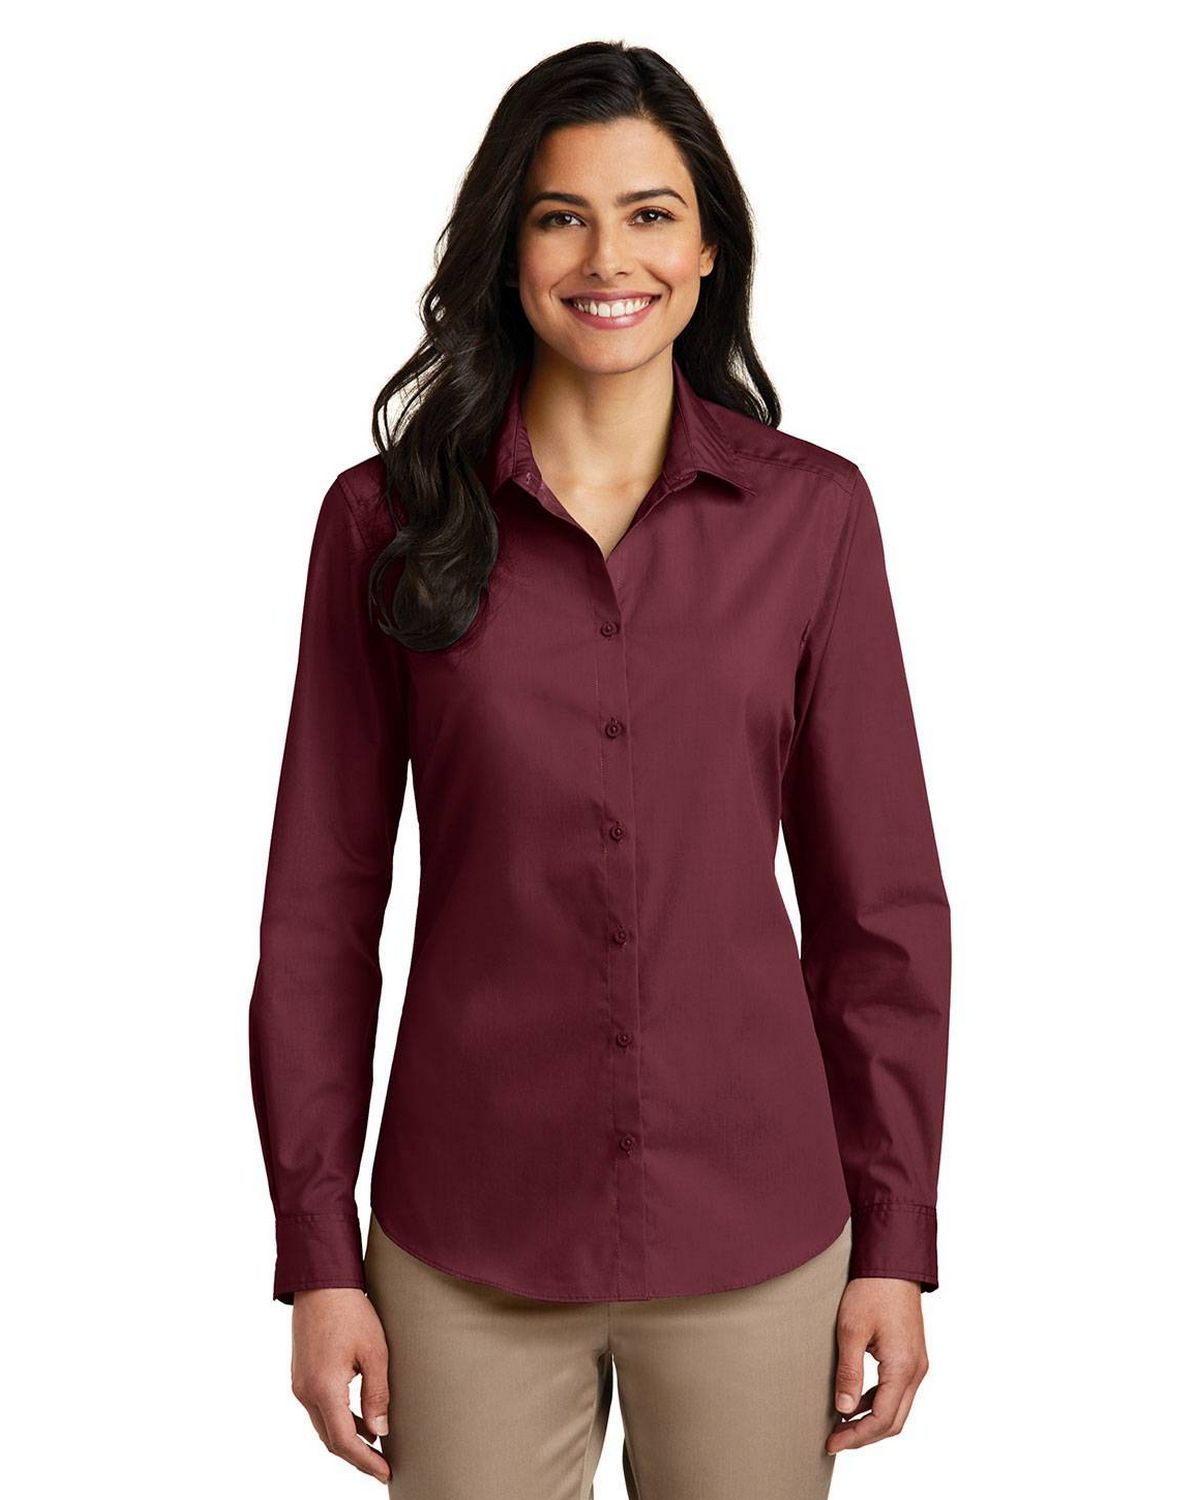 Port Authority LW100 Ladies Long Sleeve Carefree Poplin Shirt